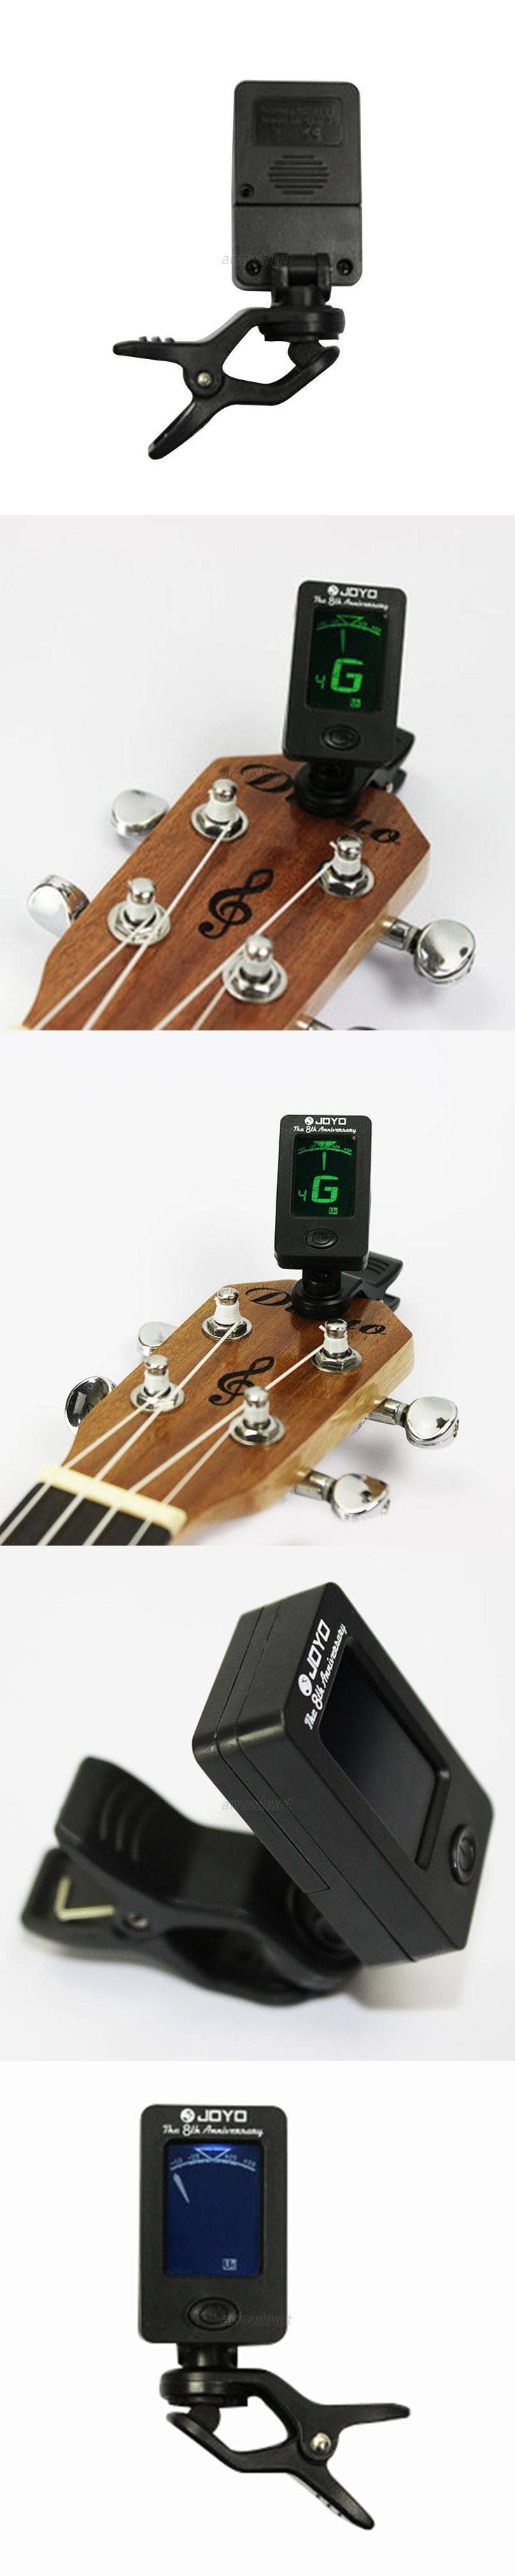 Chromatic Clip-On Digital Tuner For Acoustic Electric Guitar Bass Violin Ukulele #bassguitar